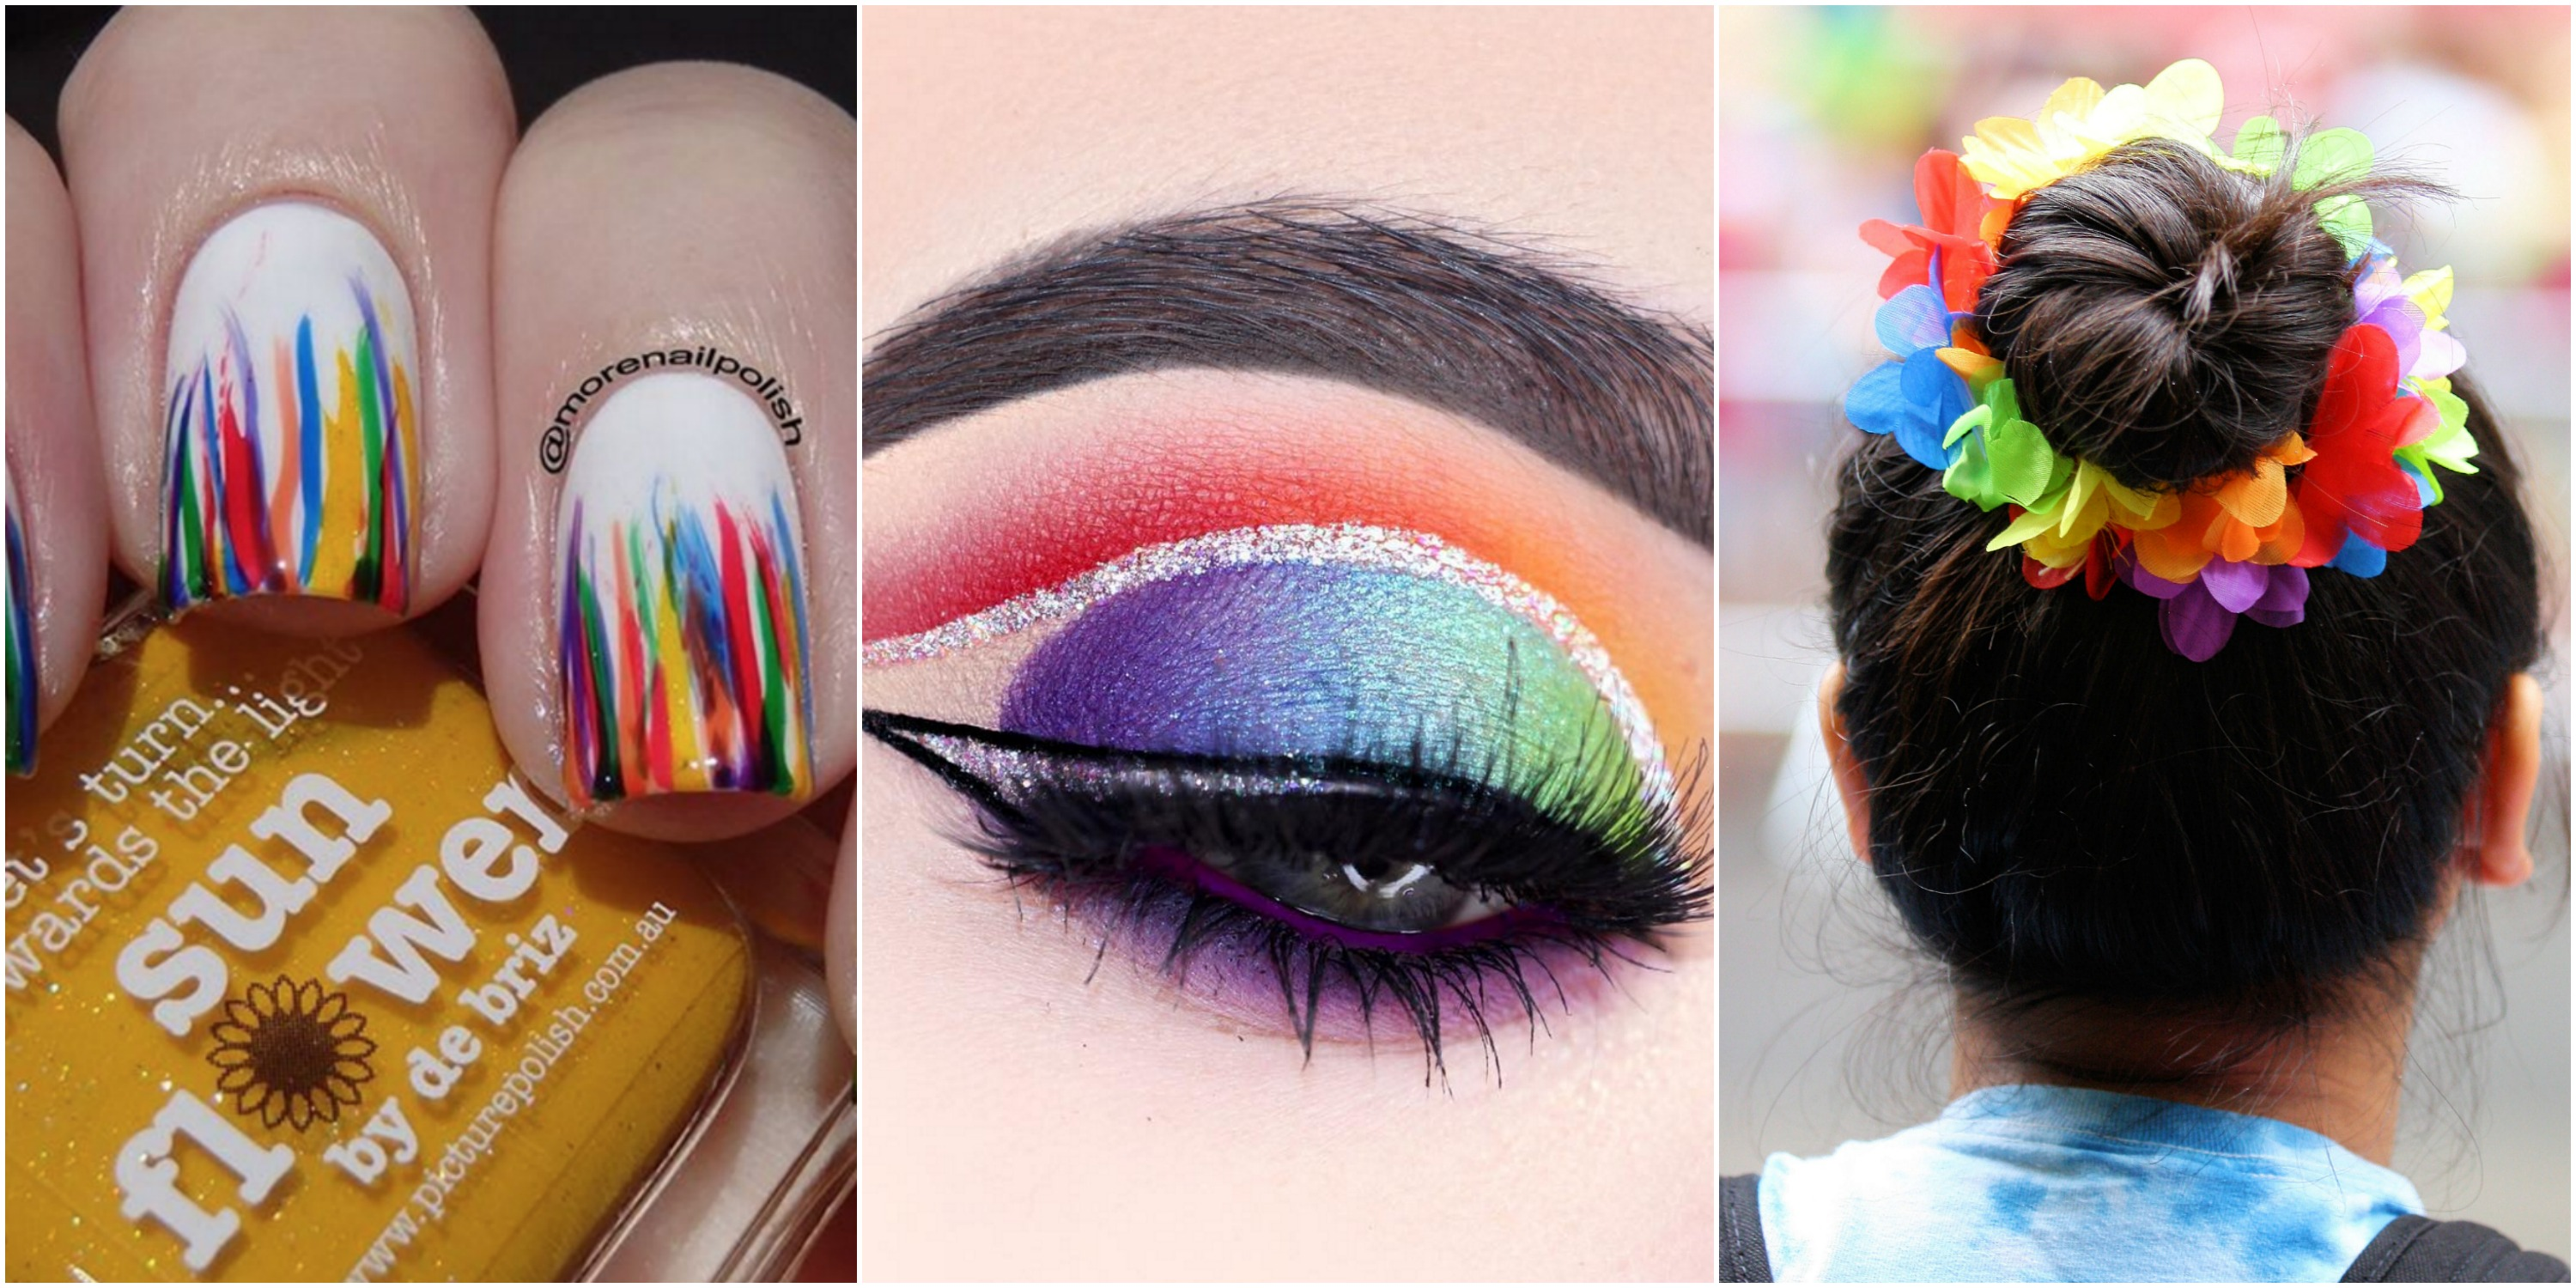 14 Rainbow Hair And Makeup Ideas To Show Support For LGBTQ